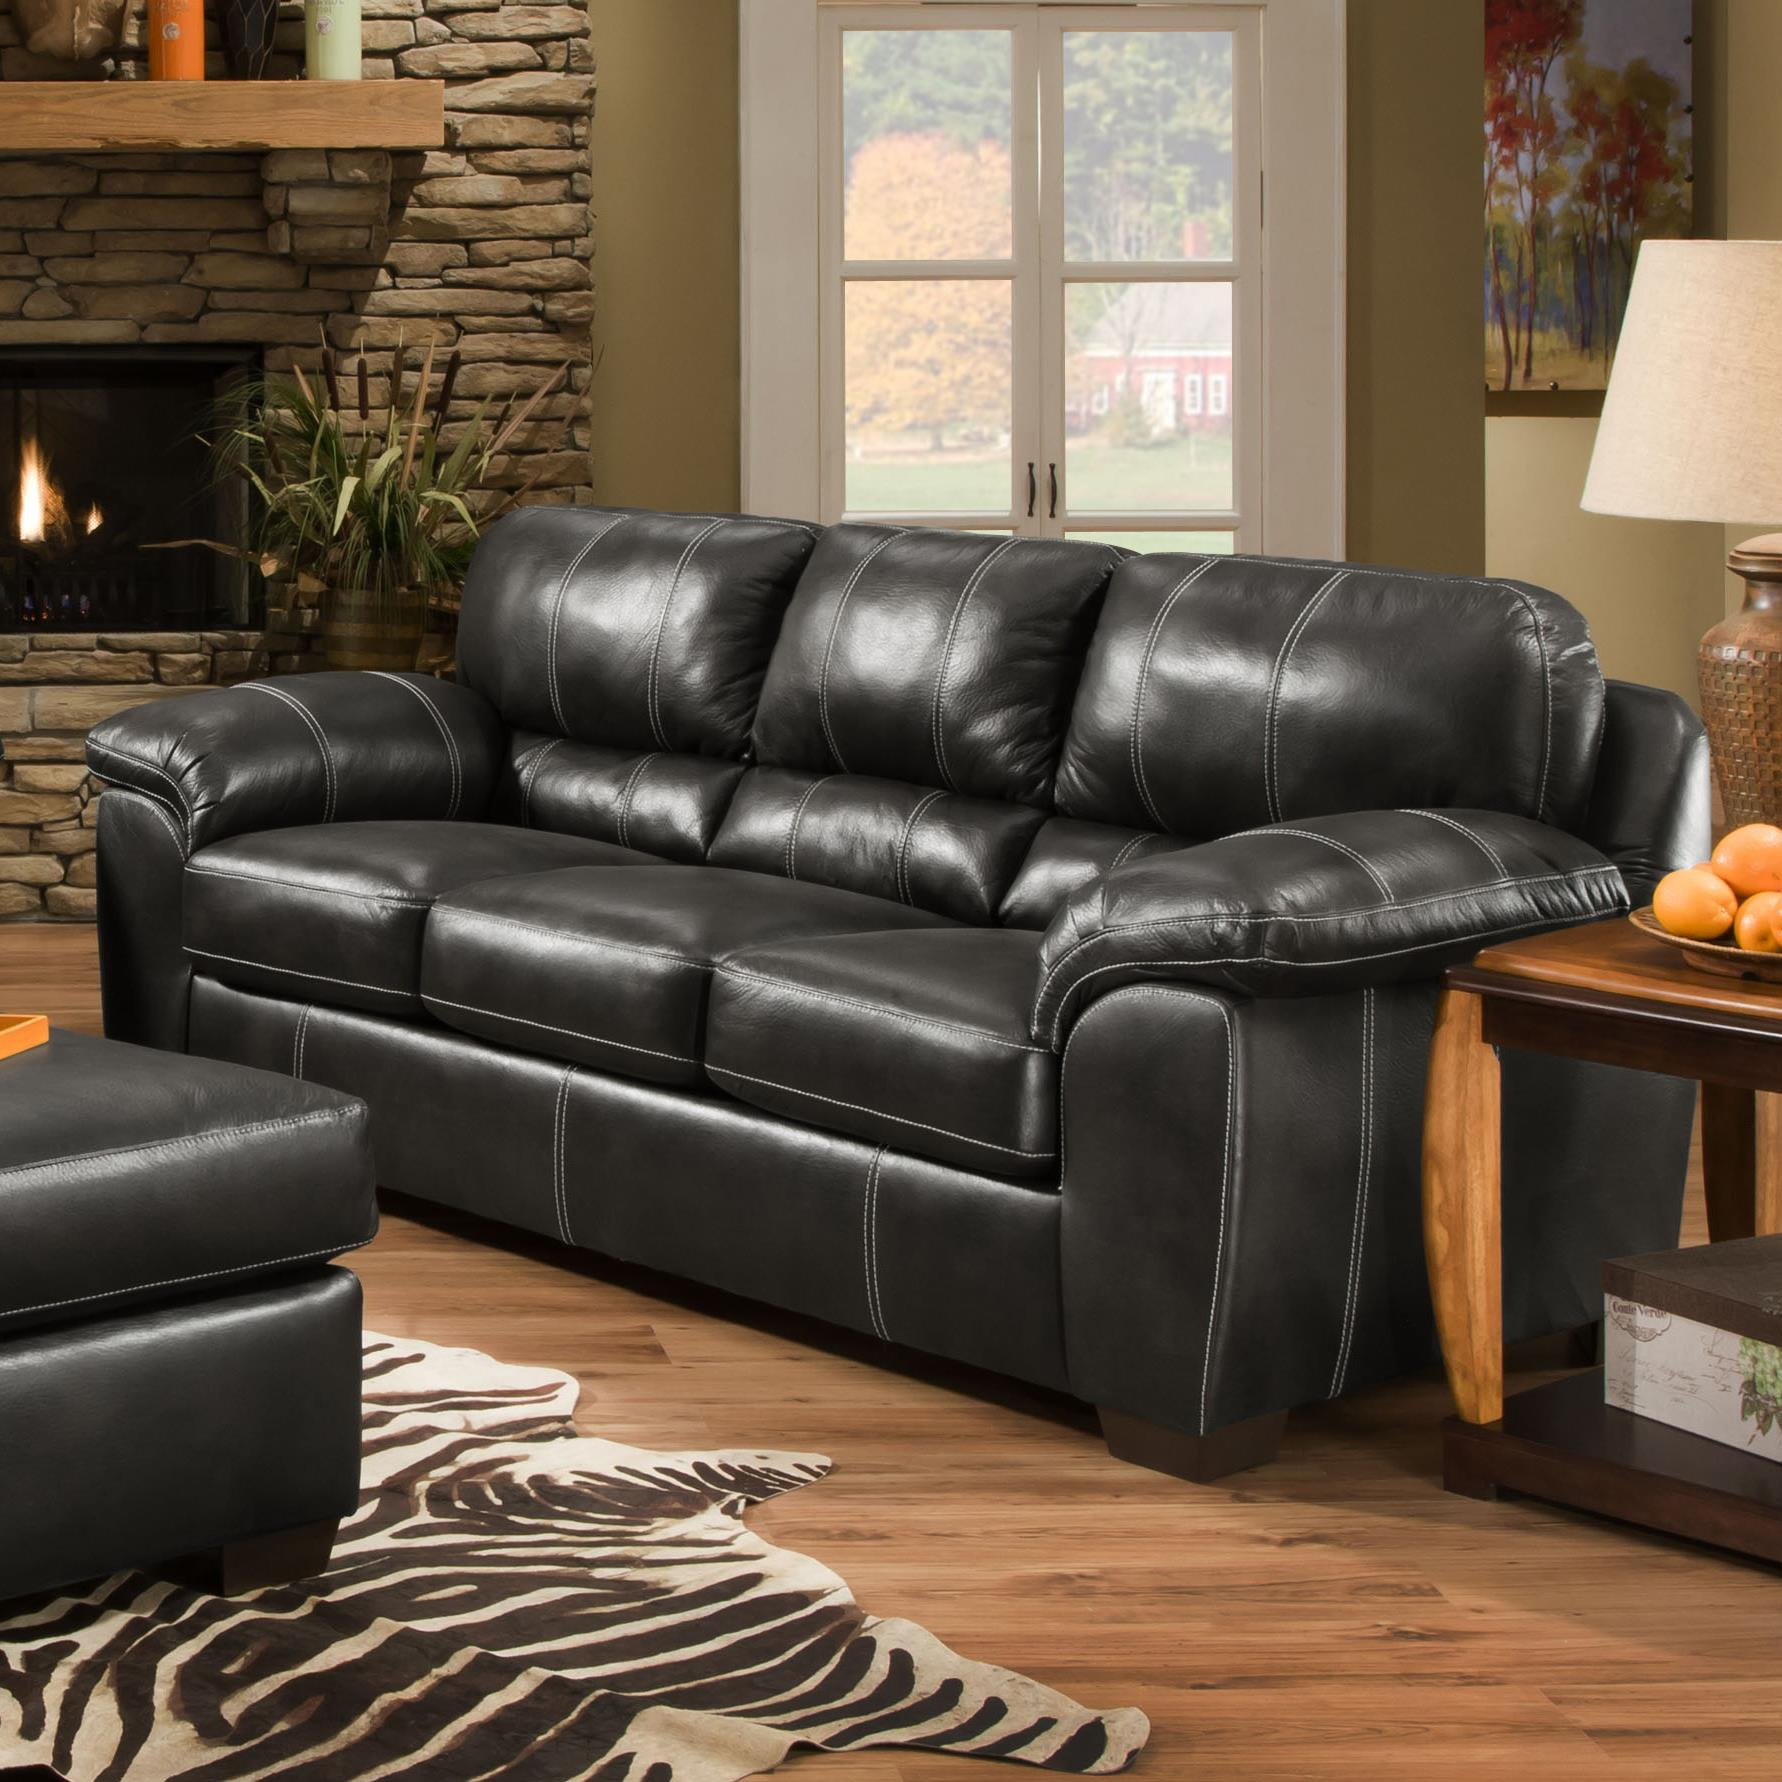 American Sofa Images 5450 Casual Sofa By American Furniture At Rooms For Less